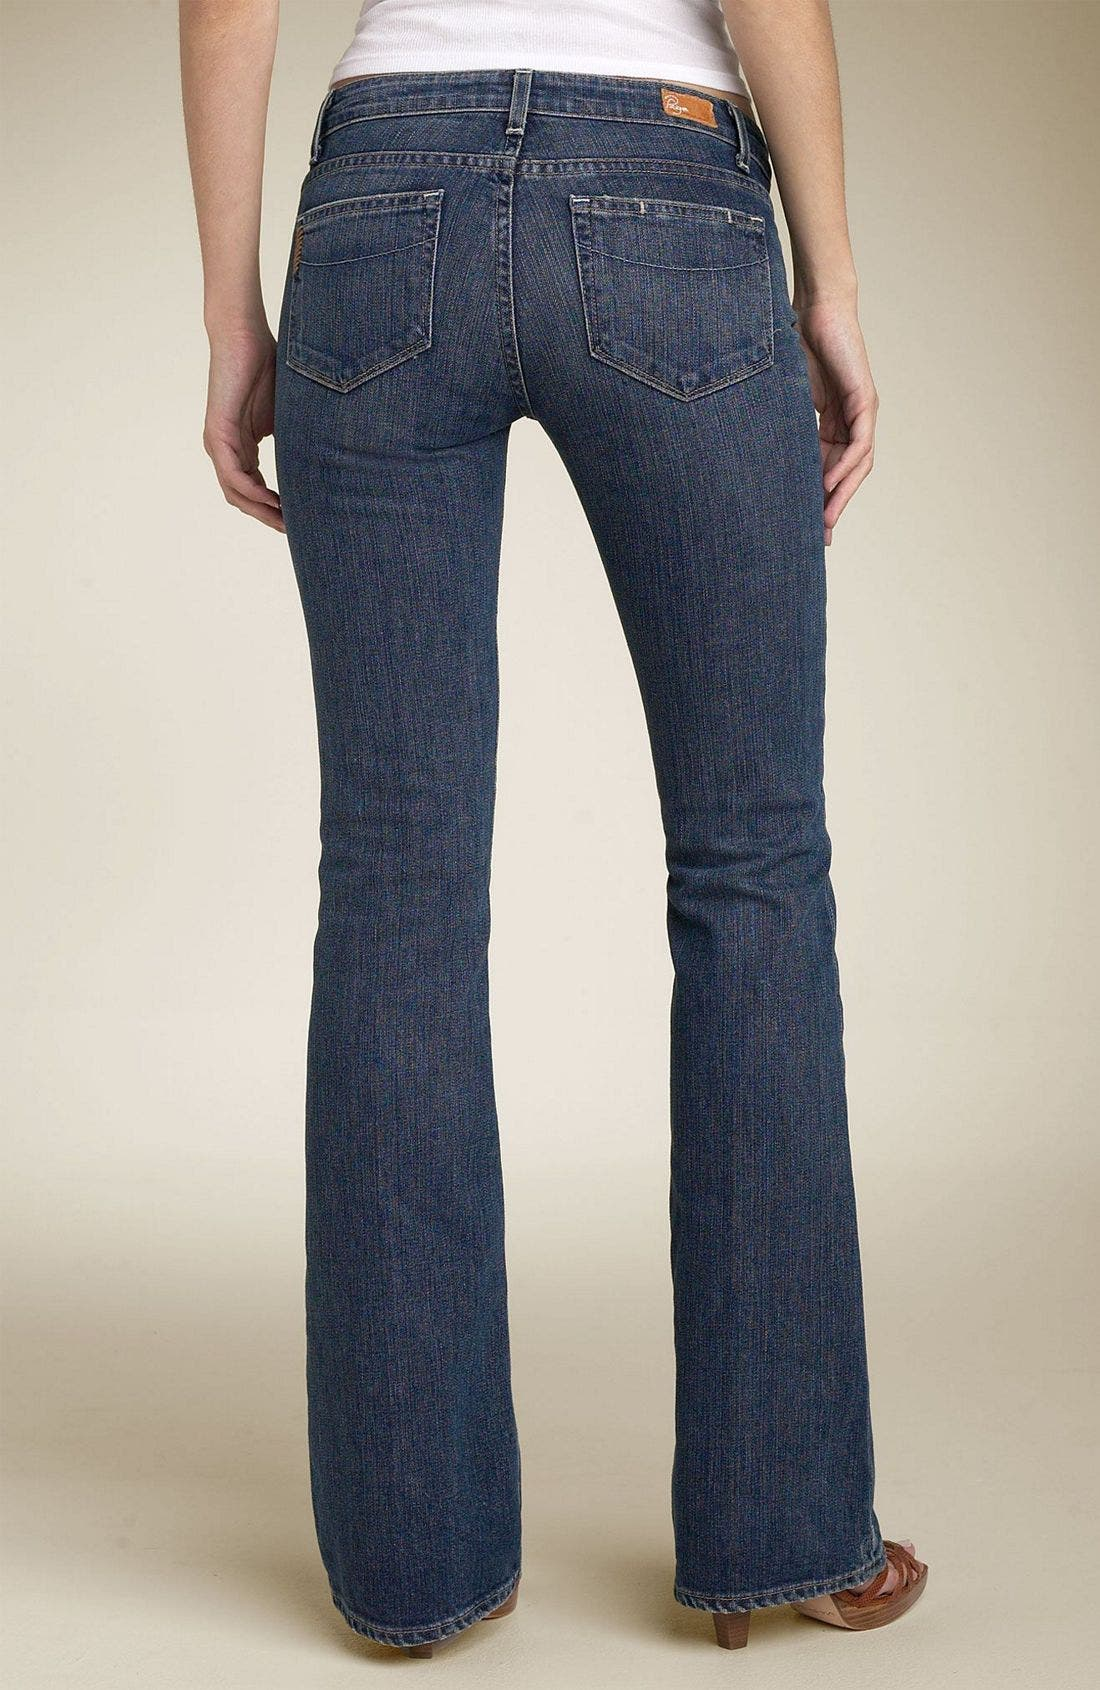 Denim 'Hollywood Hills' Bootcut Stretch Jeans,                             Main thumbnail 1, color,                             DCN